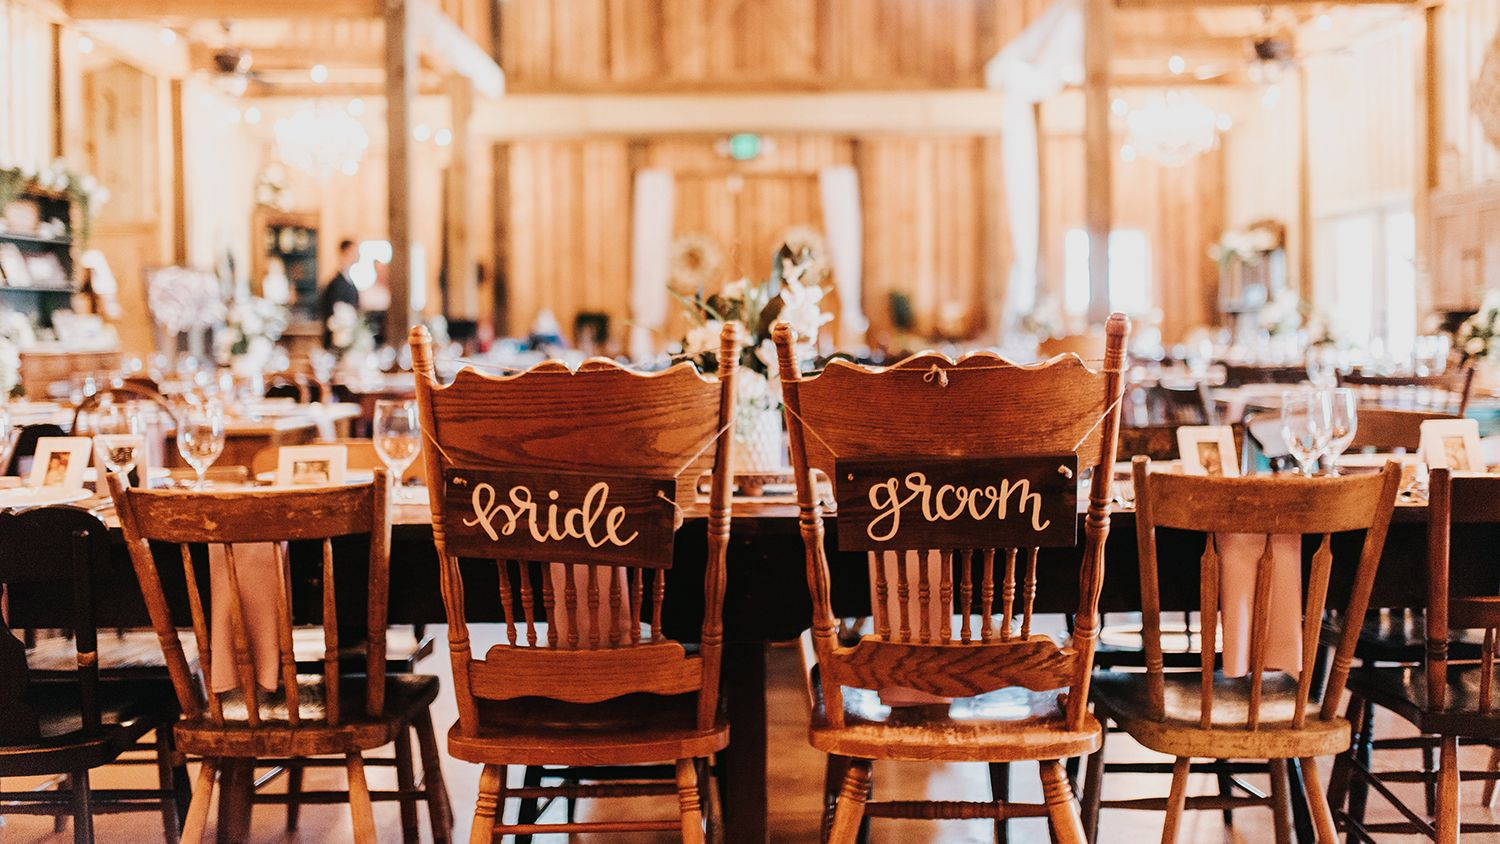 Reception Barn Bride And Groom Table With Chairs